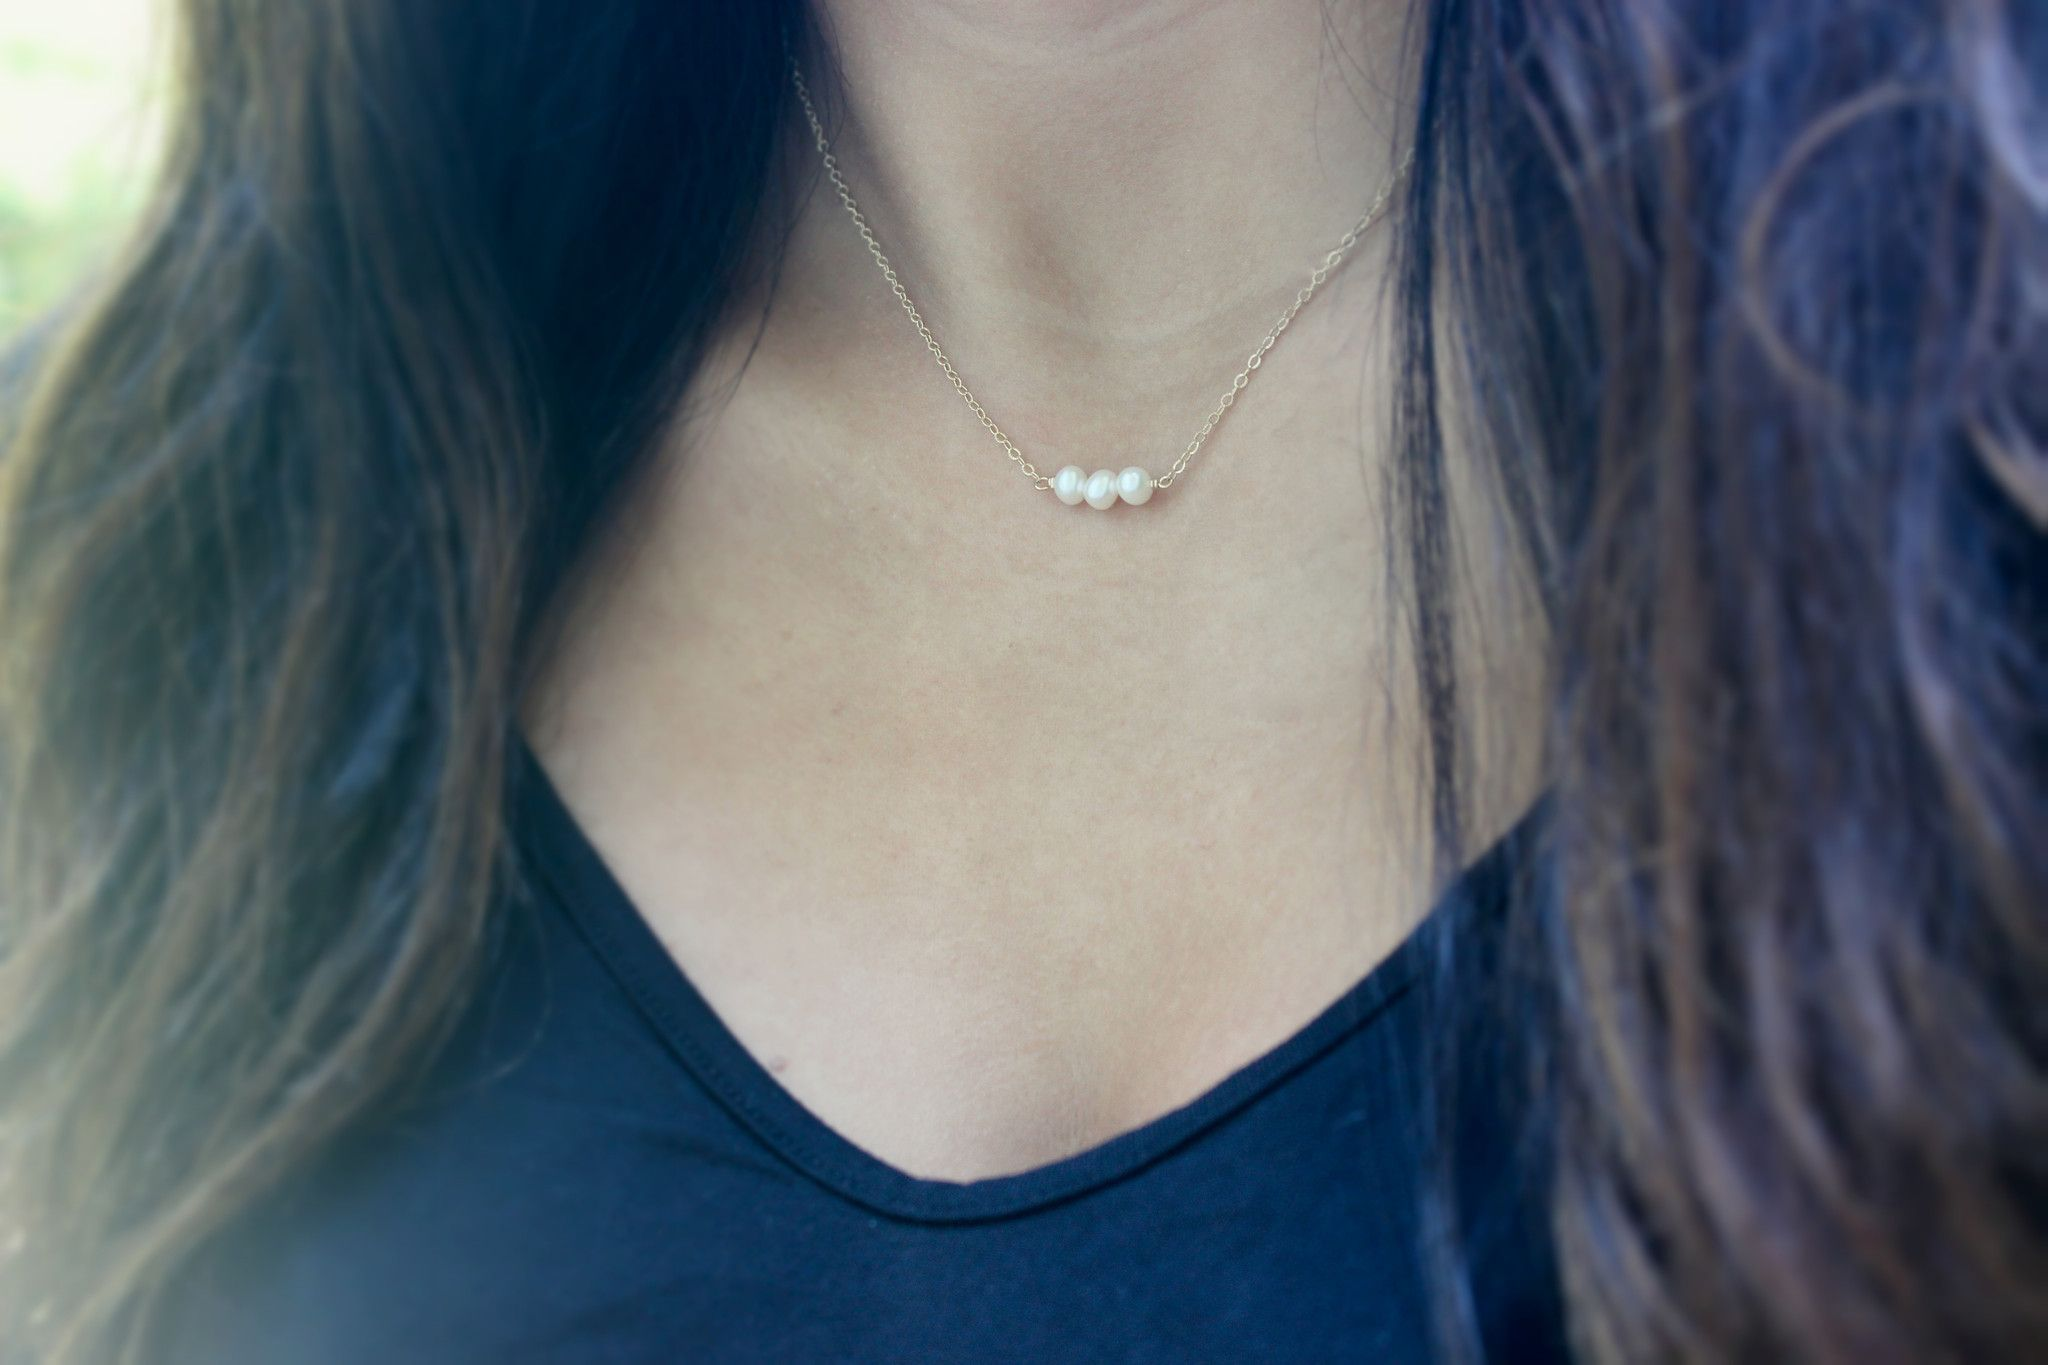 A simple gold necklace featuring three freshwater pearls suspended from a 14K gold fill chain. The necklace features a springring clasp. All metal components are 14K gold fill. The perfect necklace th